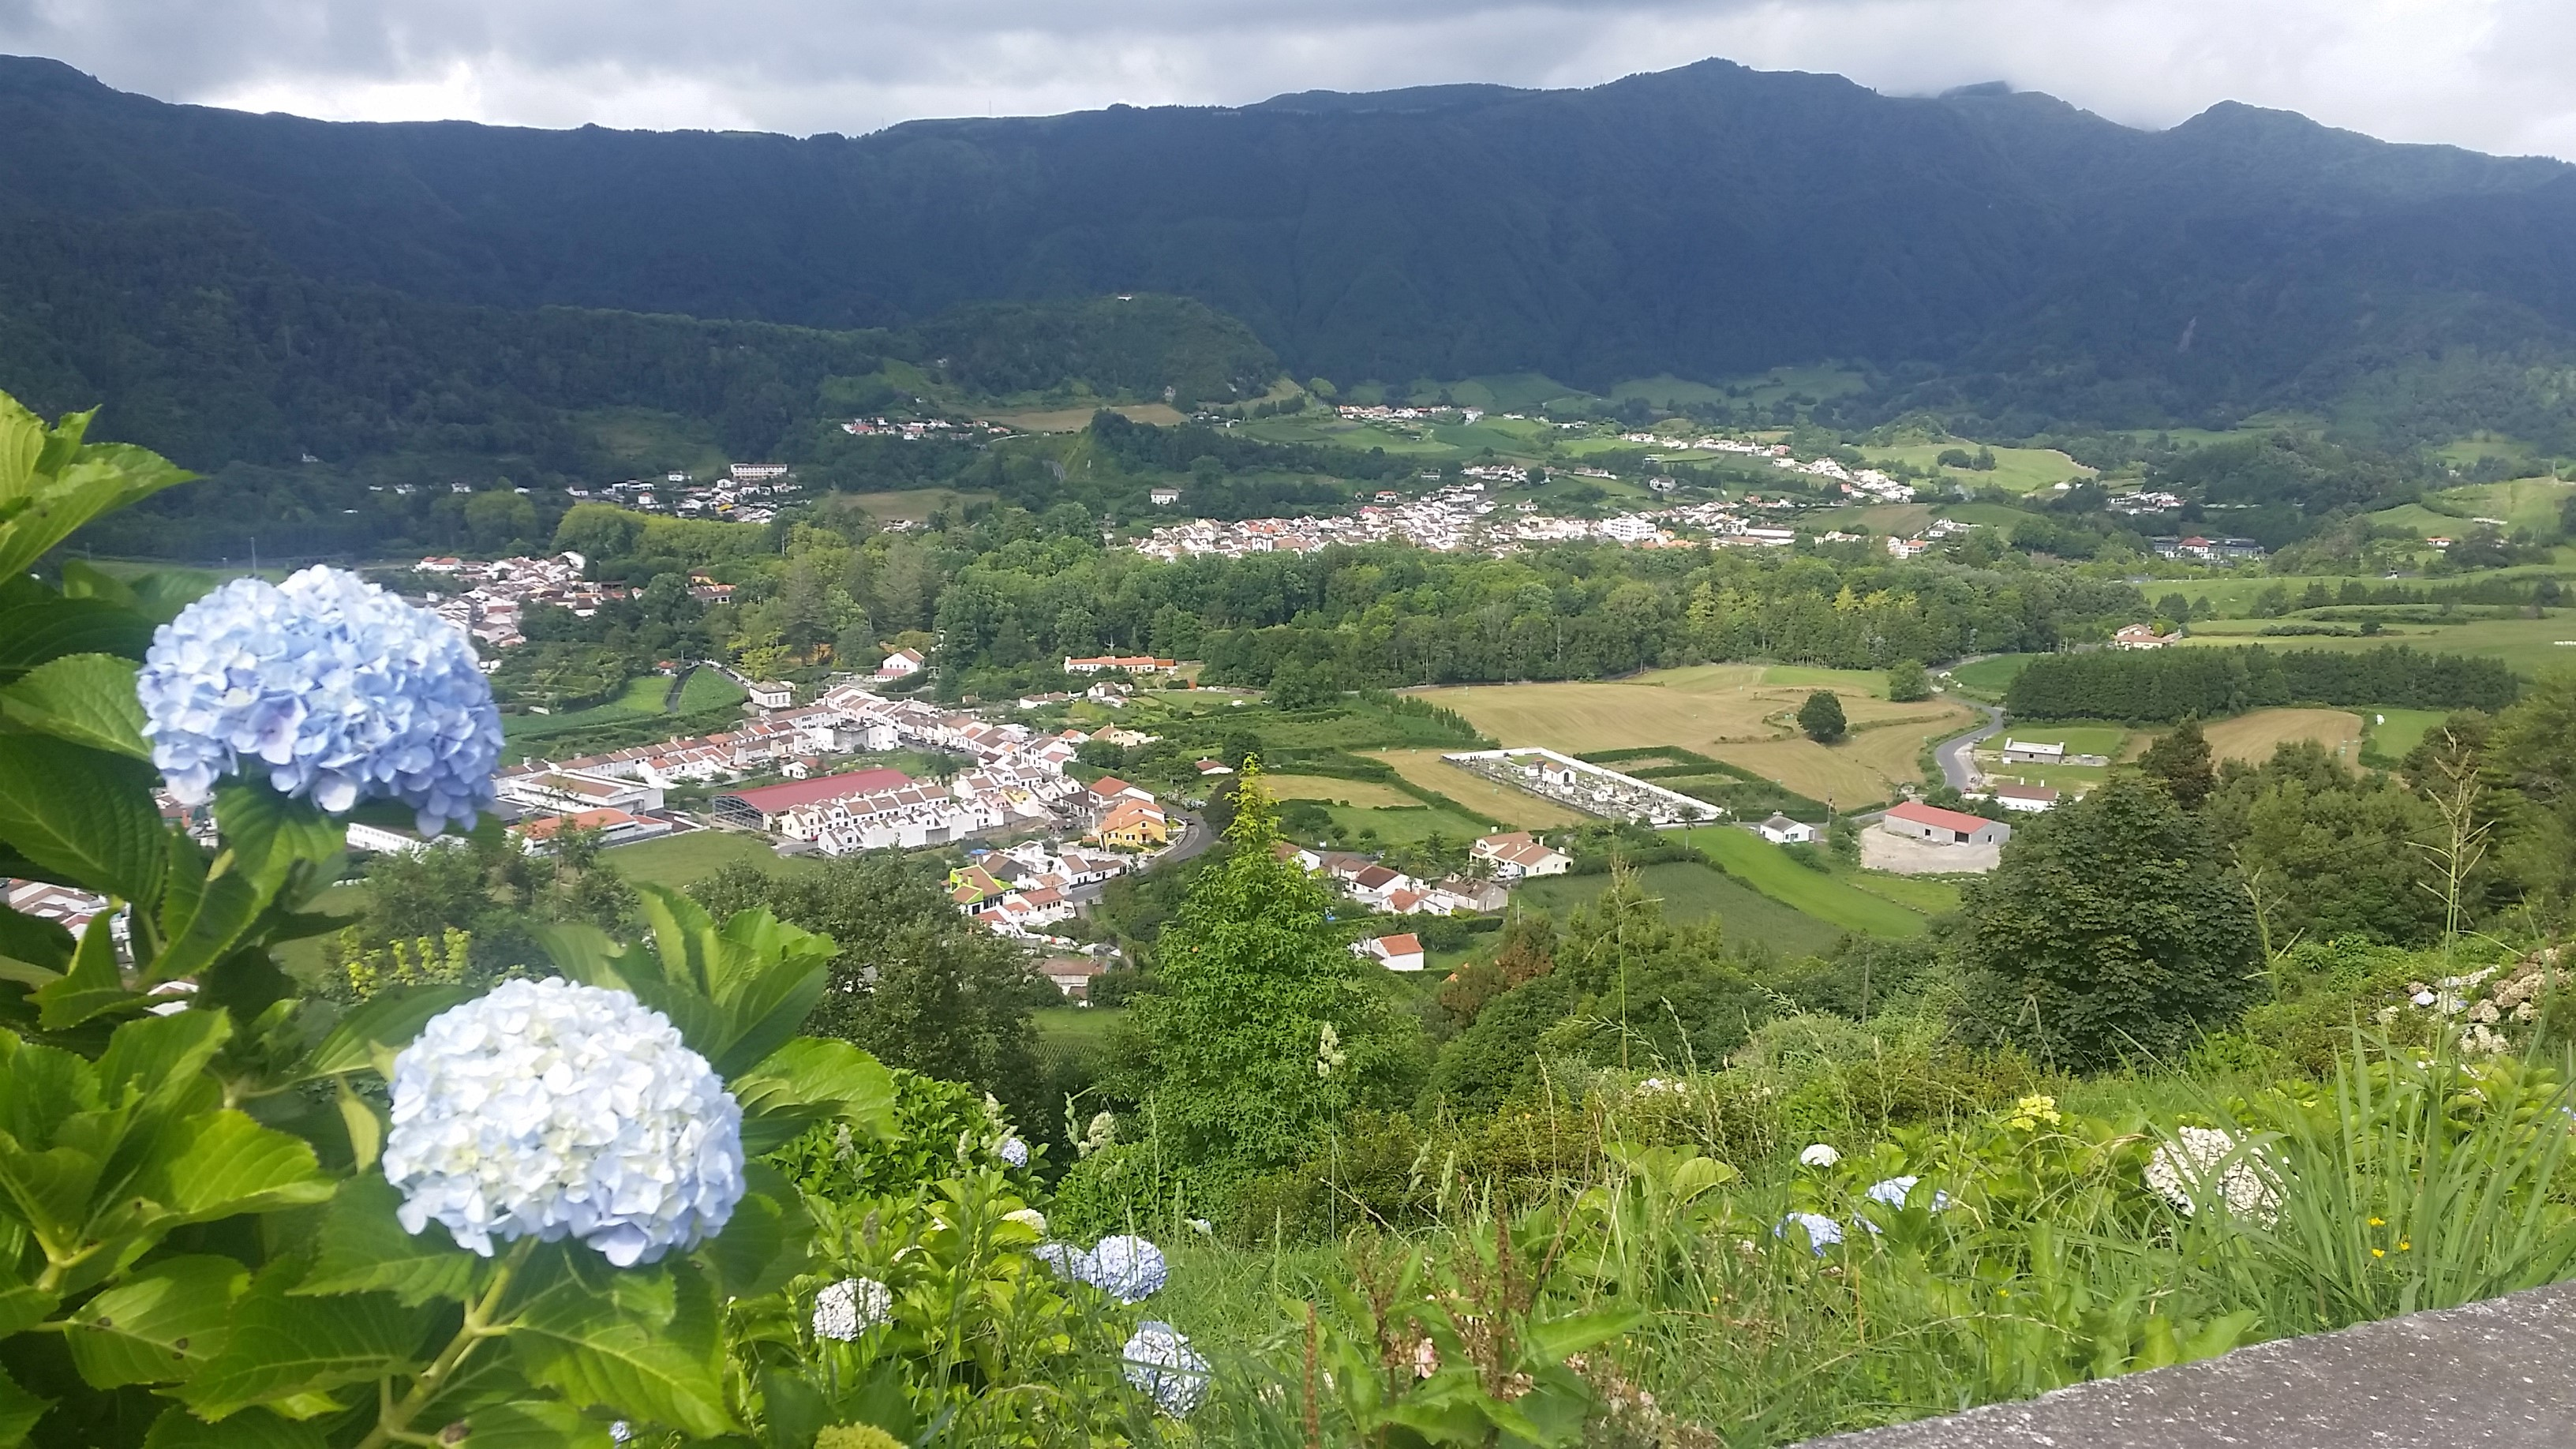 Lombo do Milho viewpoint of Furnas village